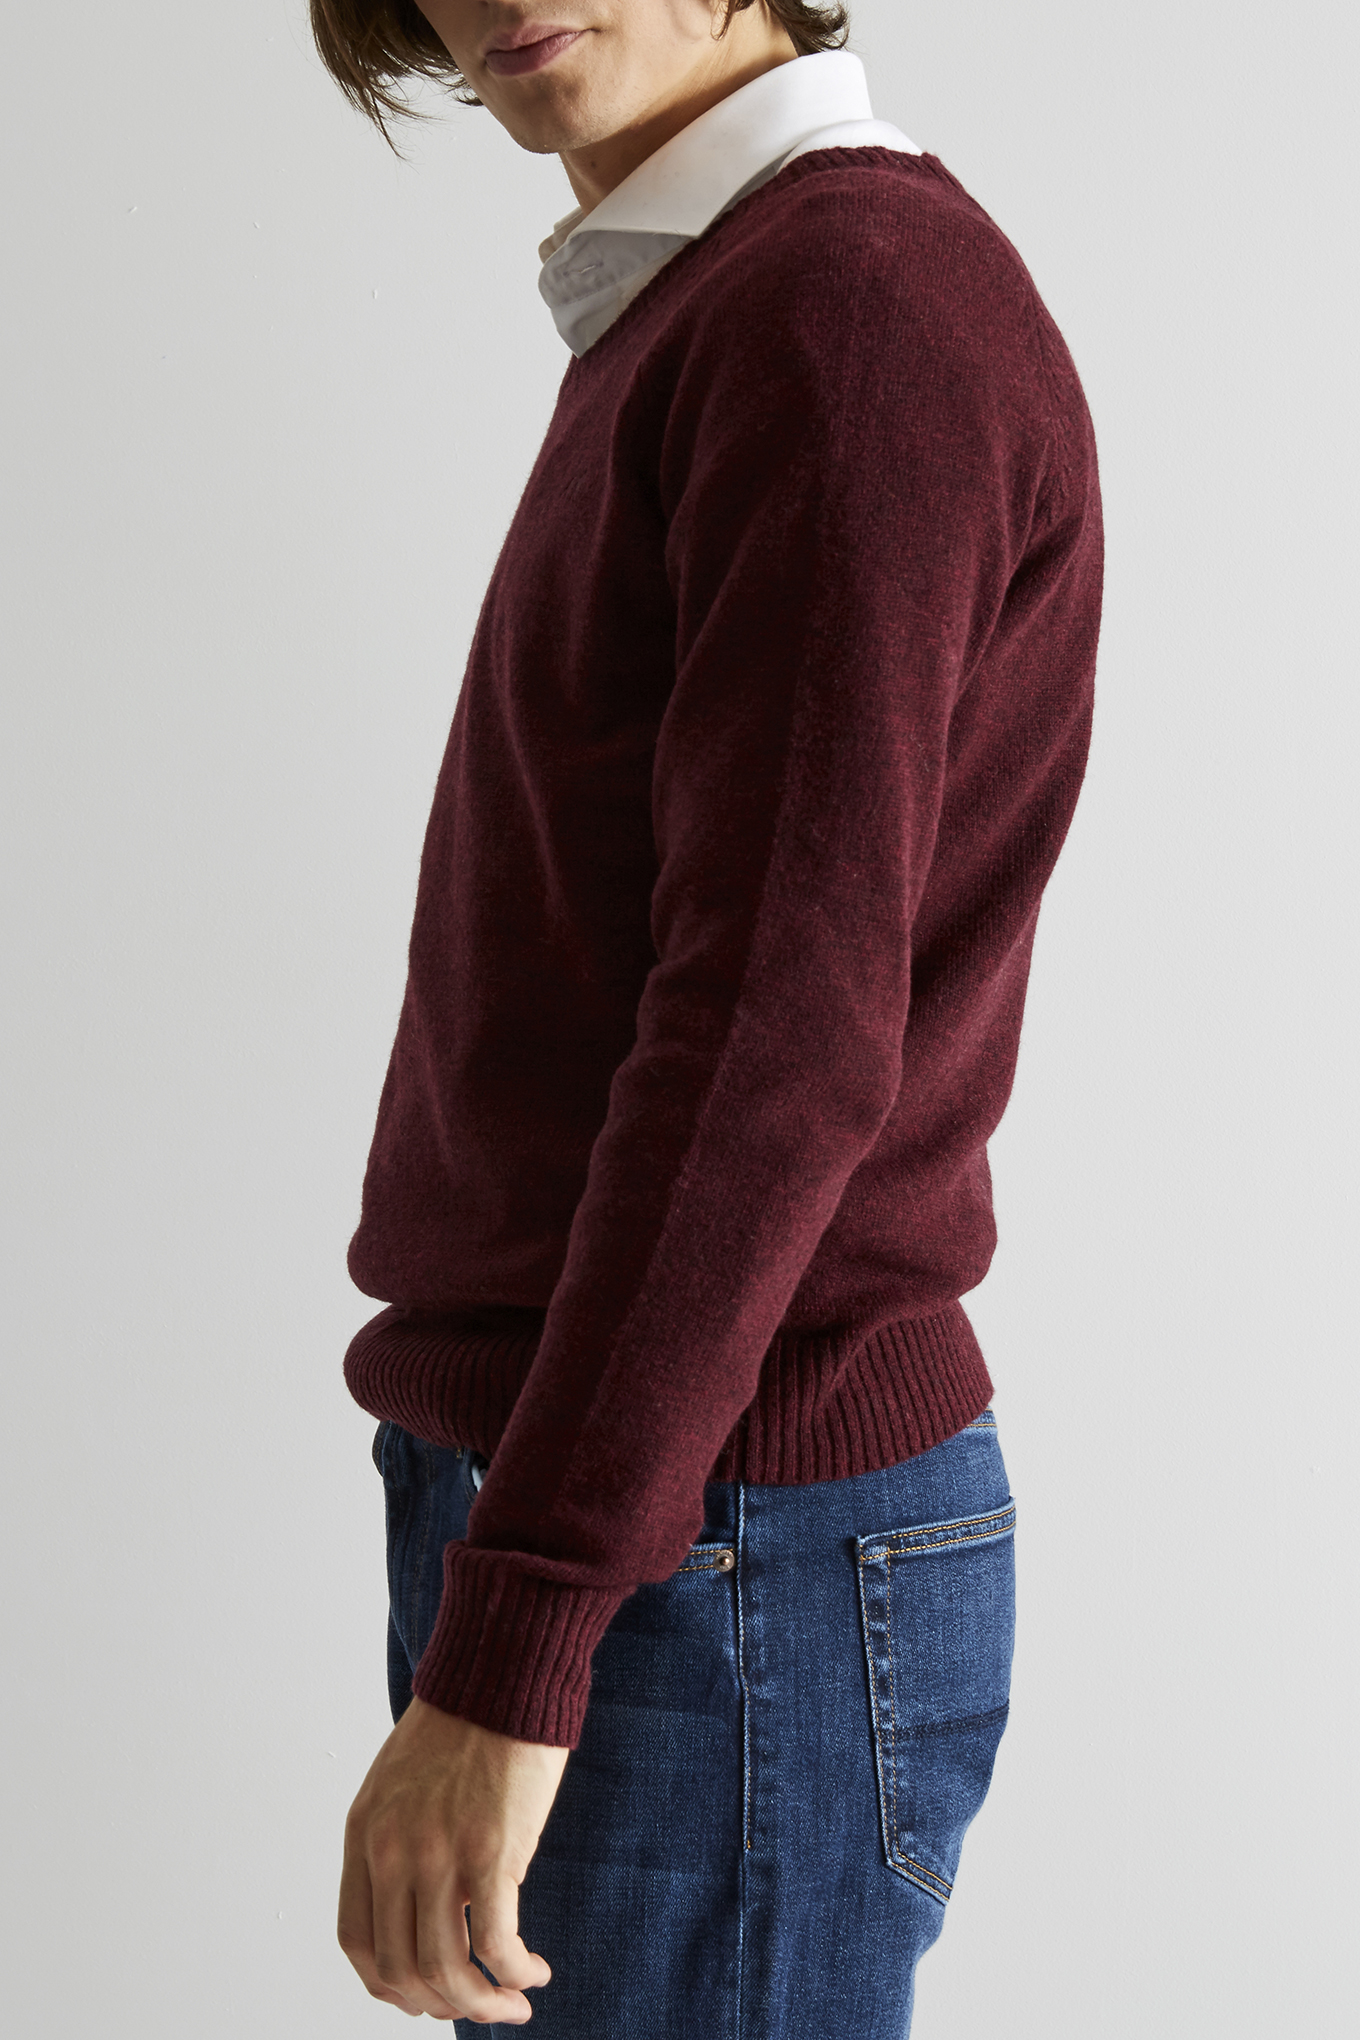 Sweater Bordeaux Casual Man